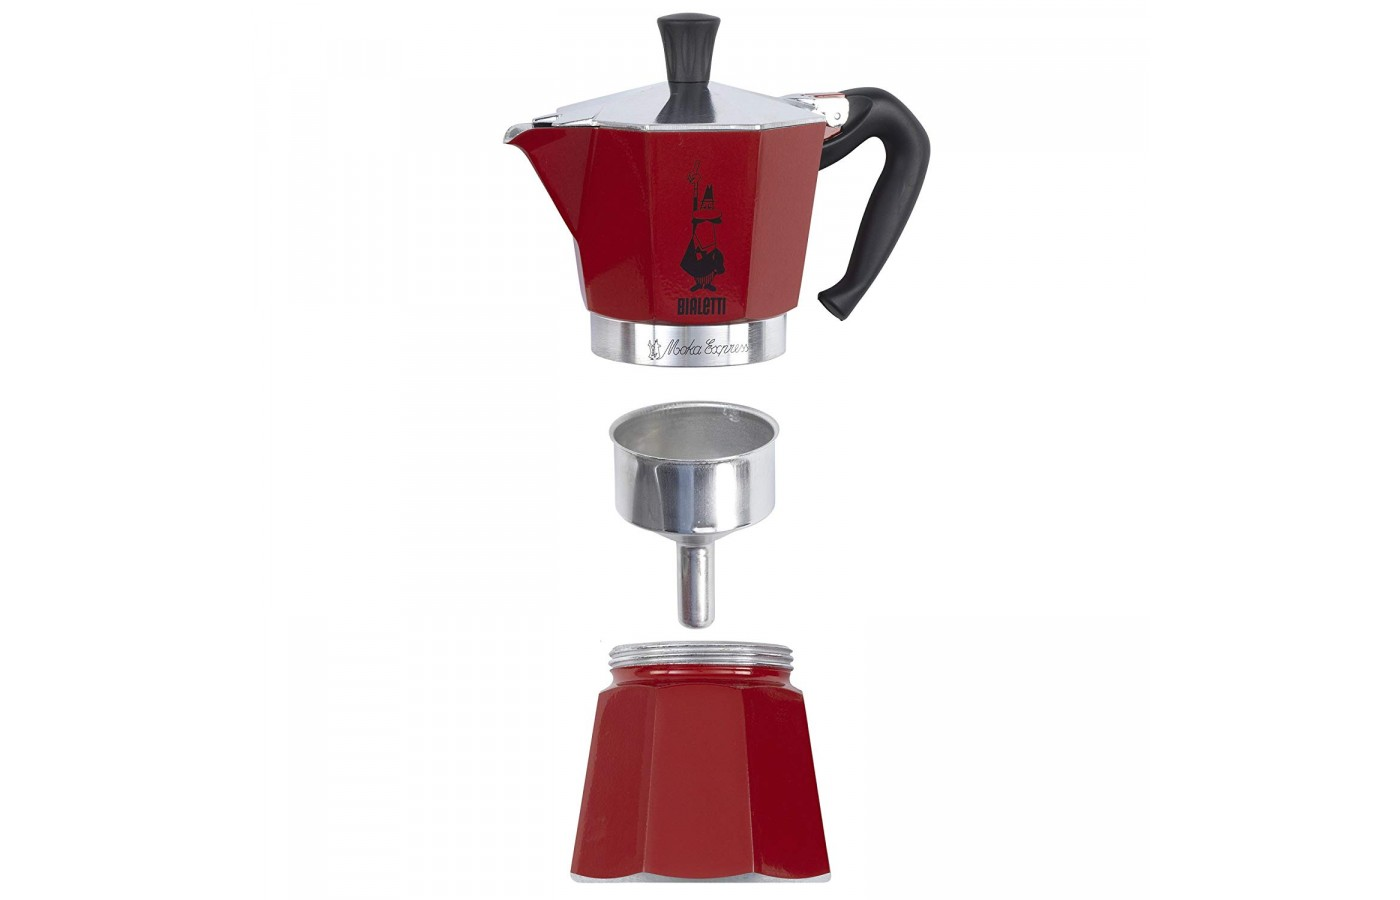 The Bialetti Moka Express offers a removable filter for easier cleaning.